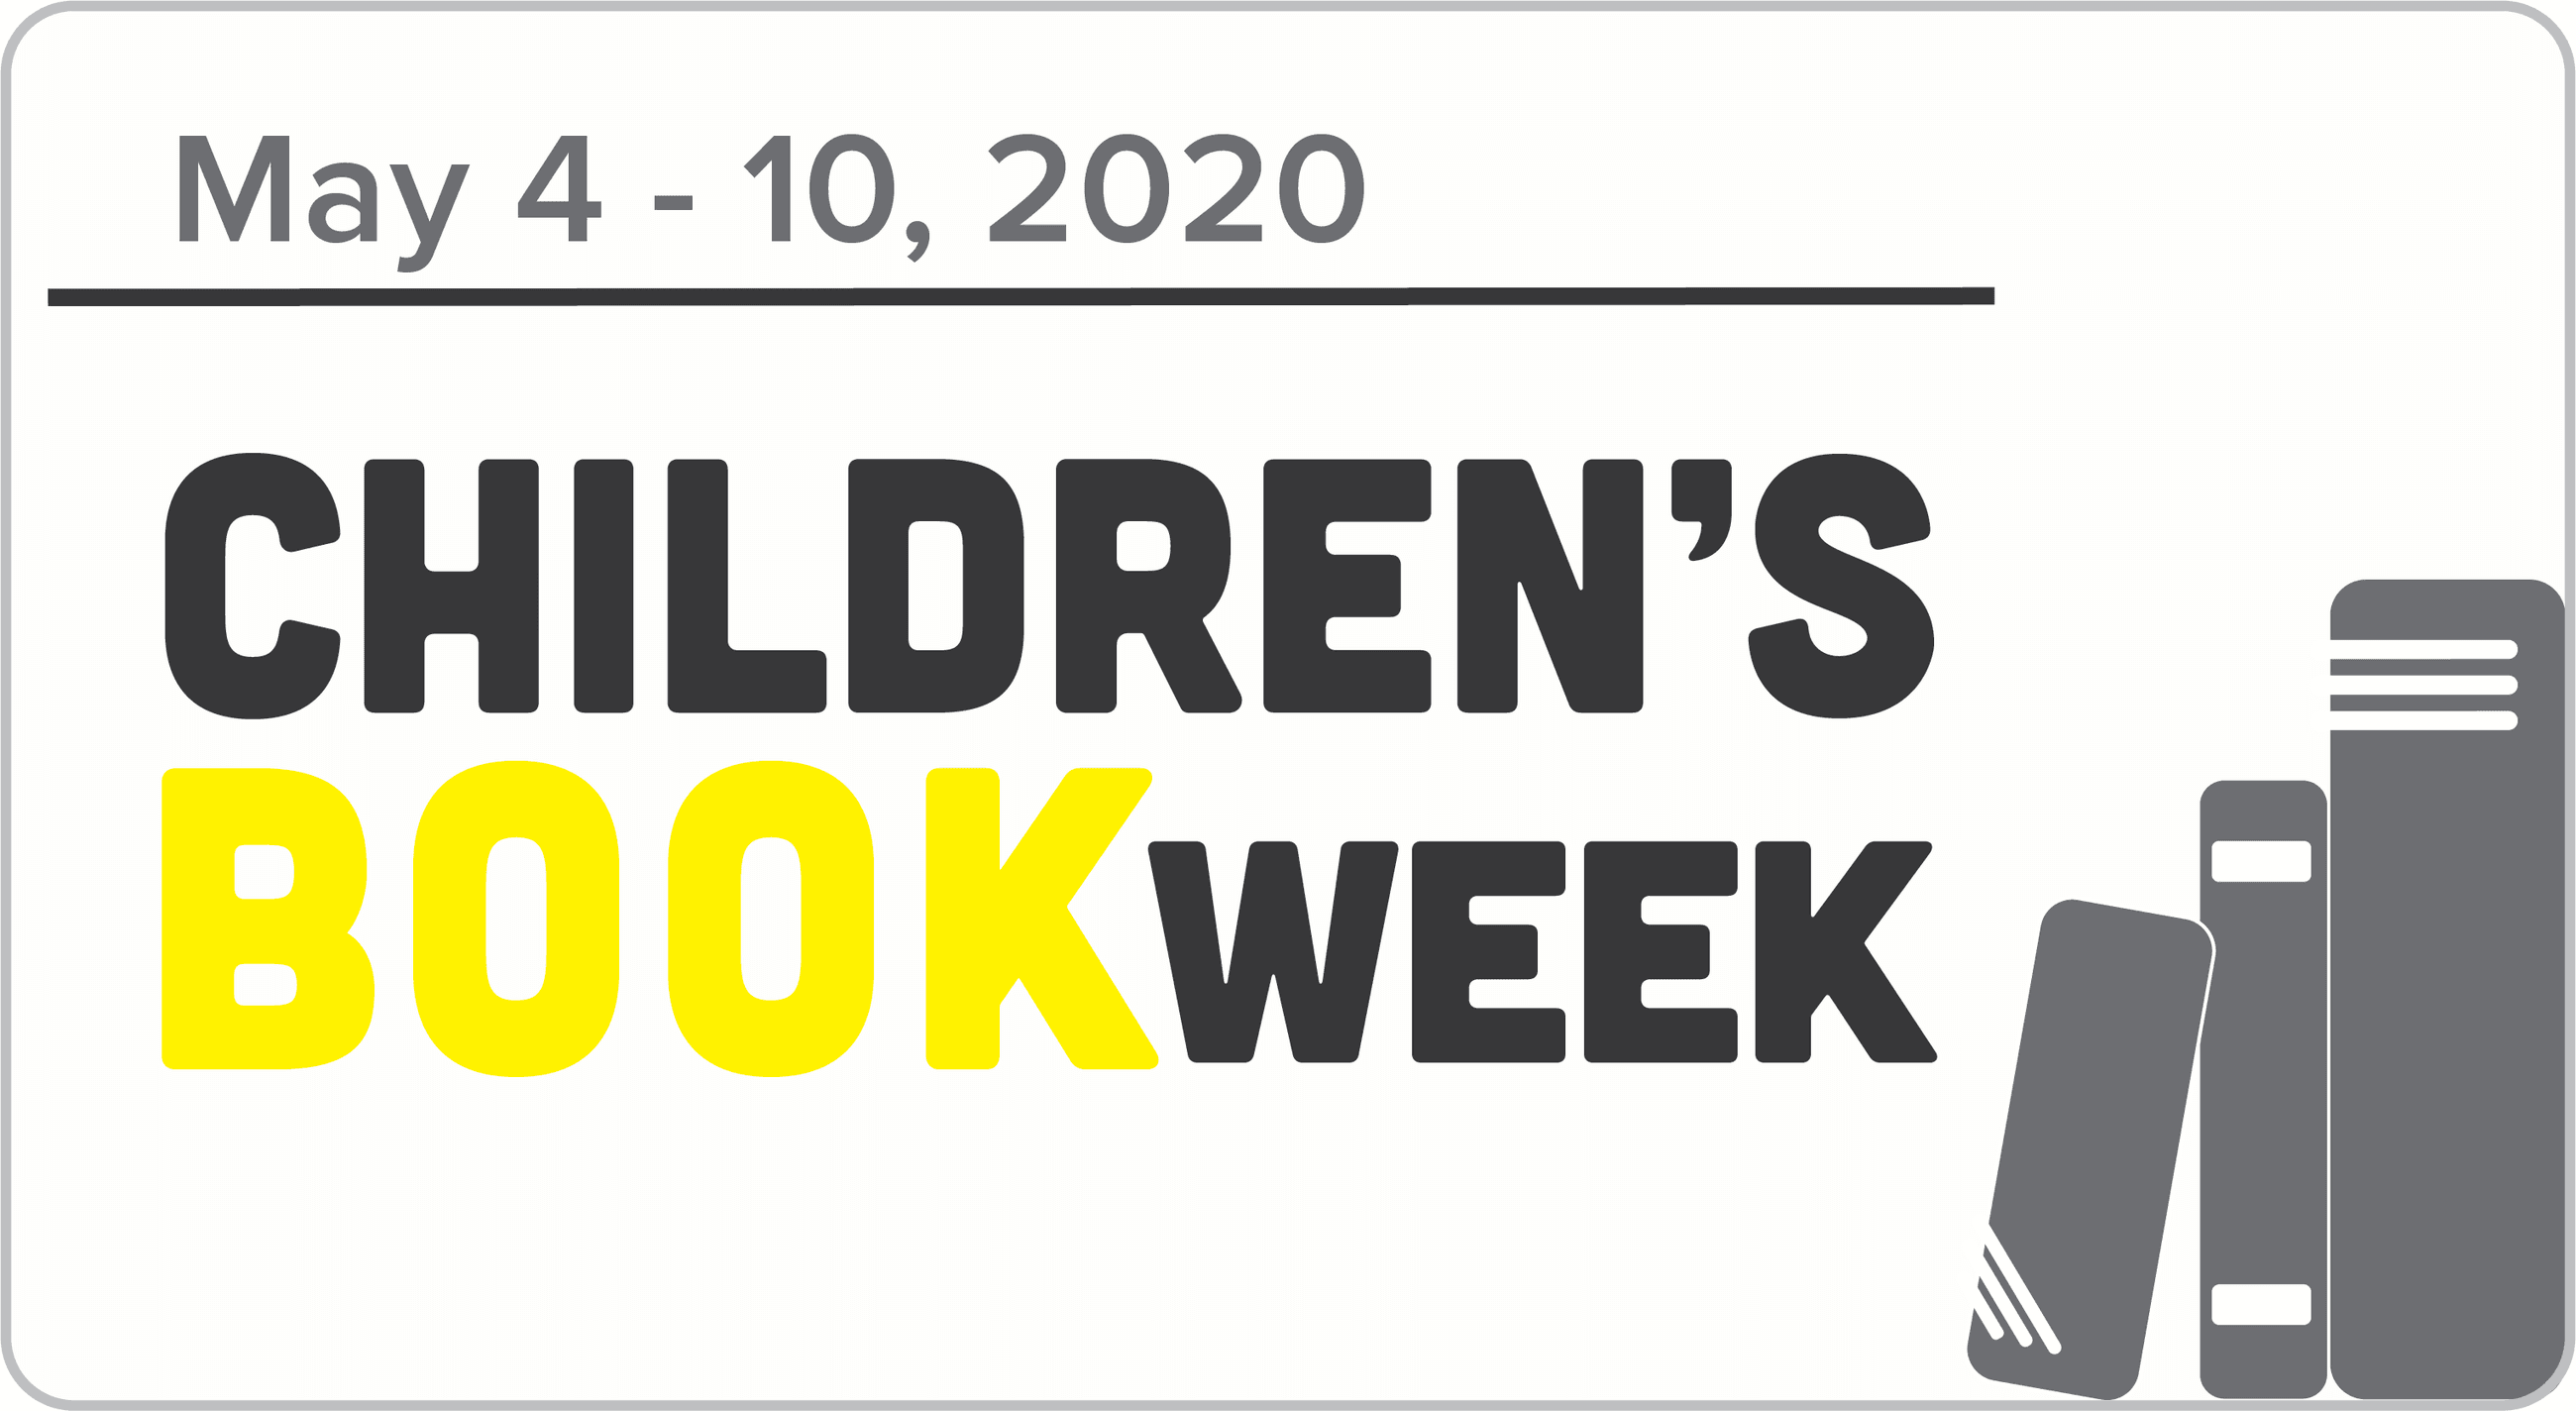 childrens book week 2020 logo